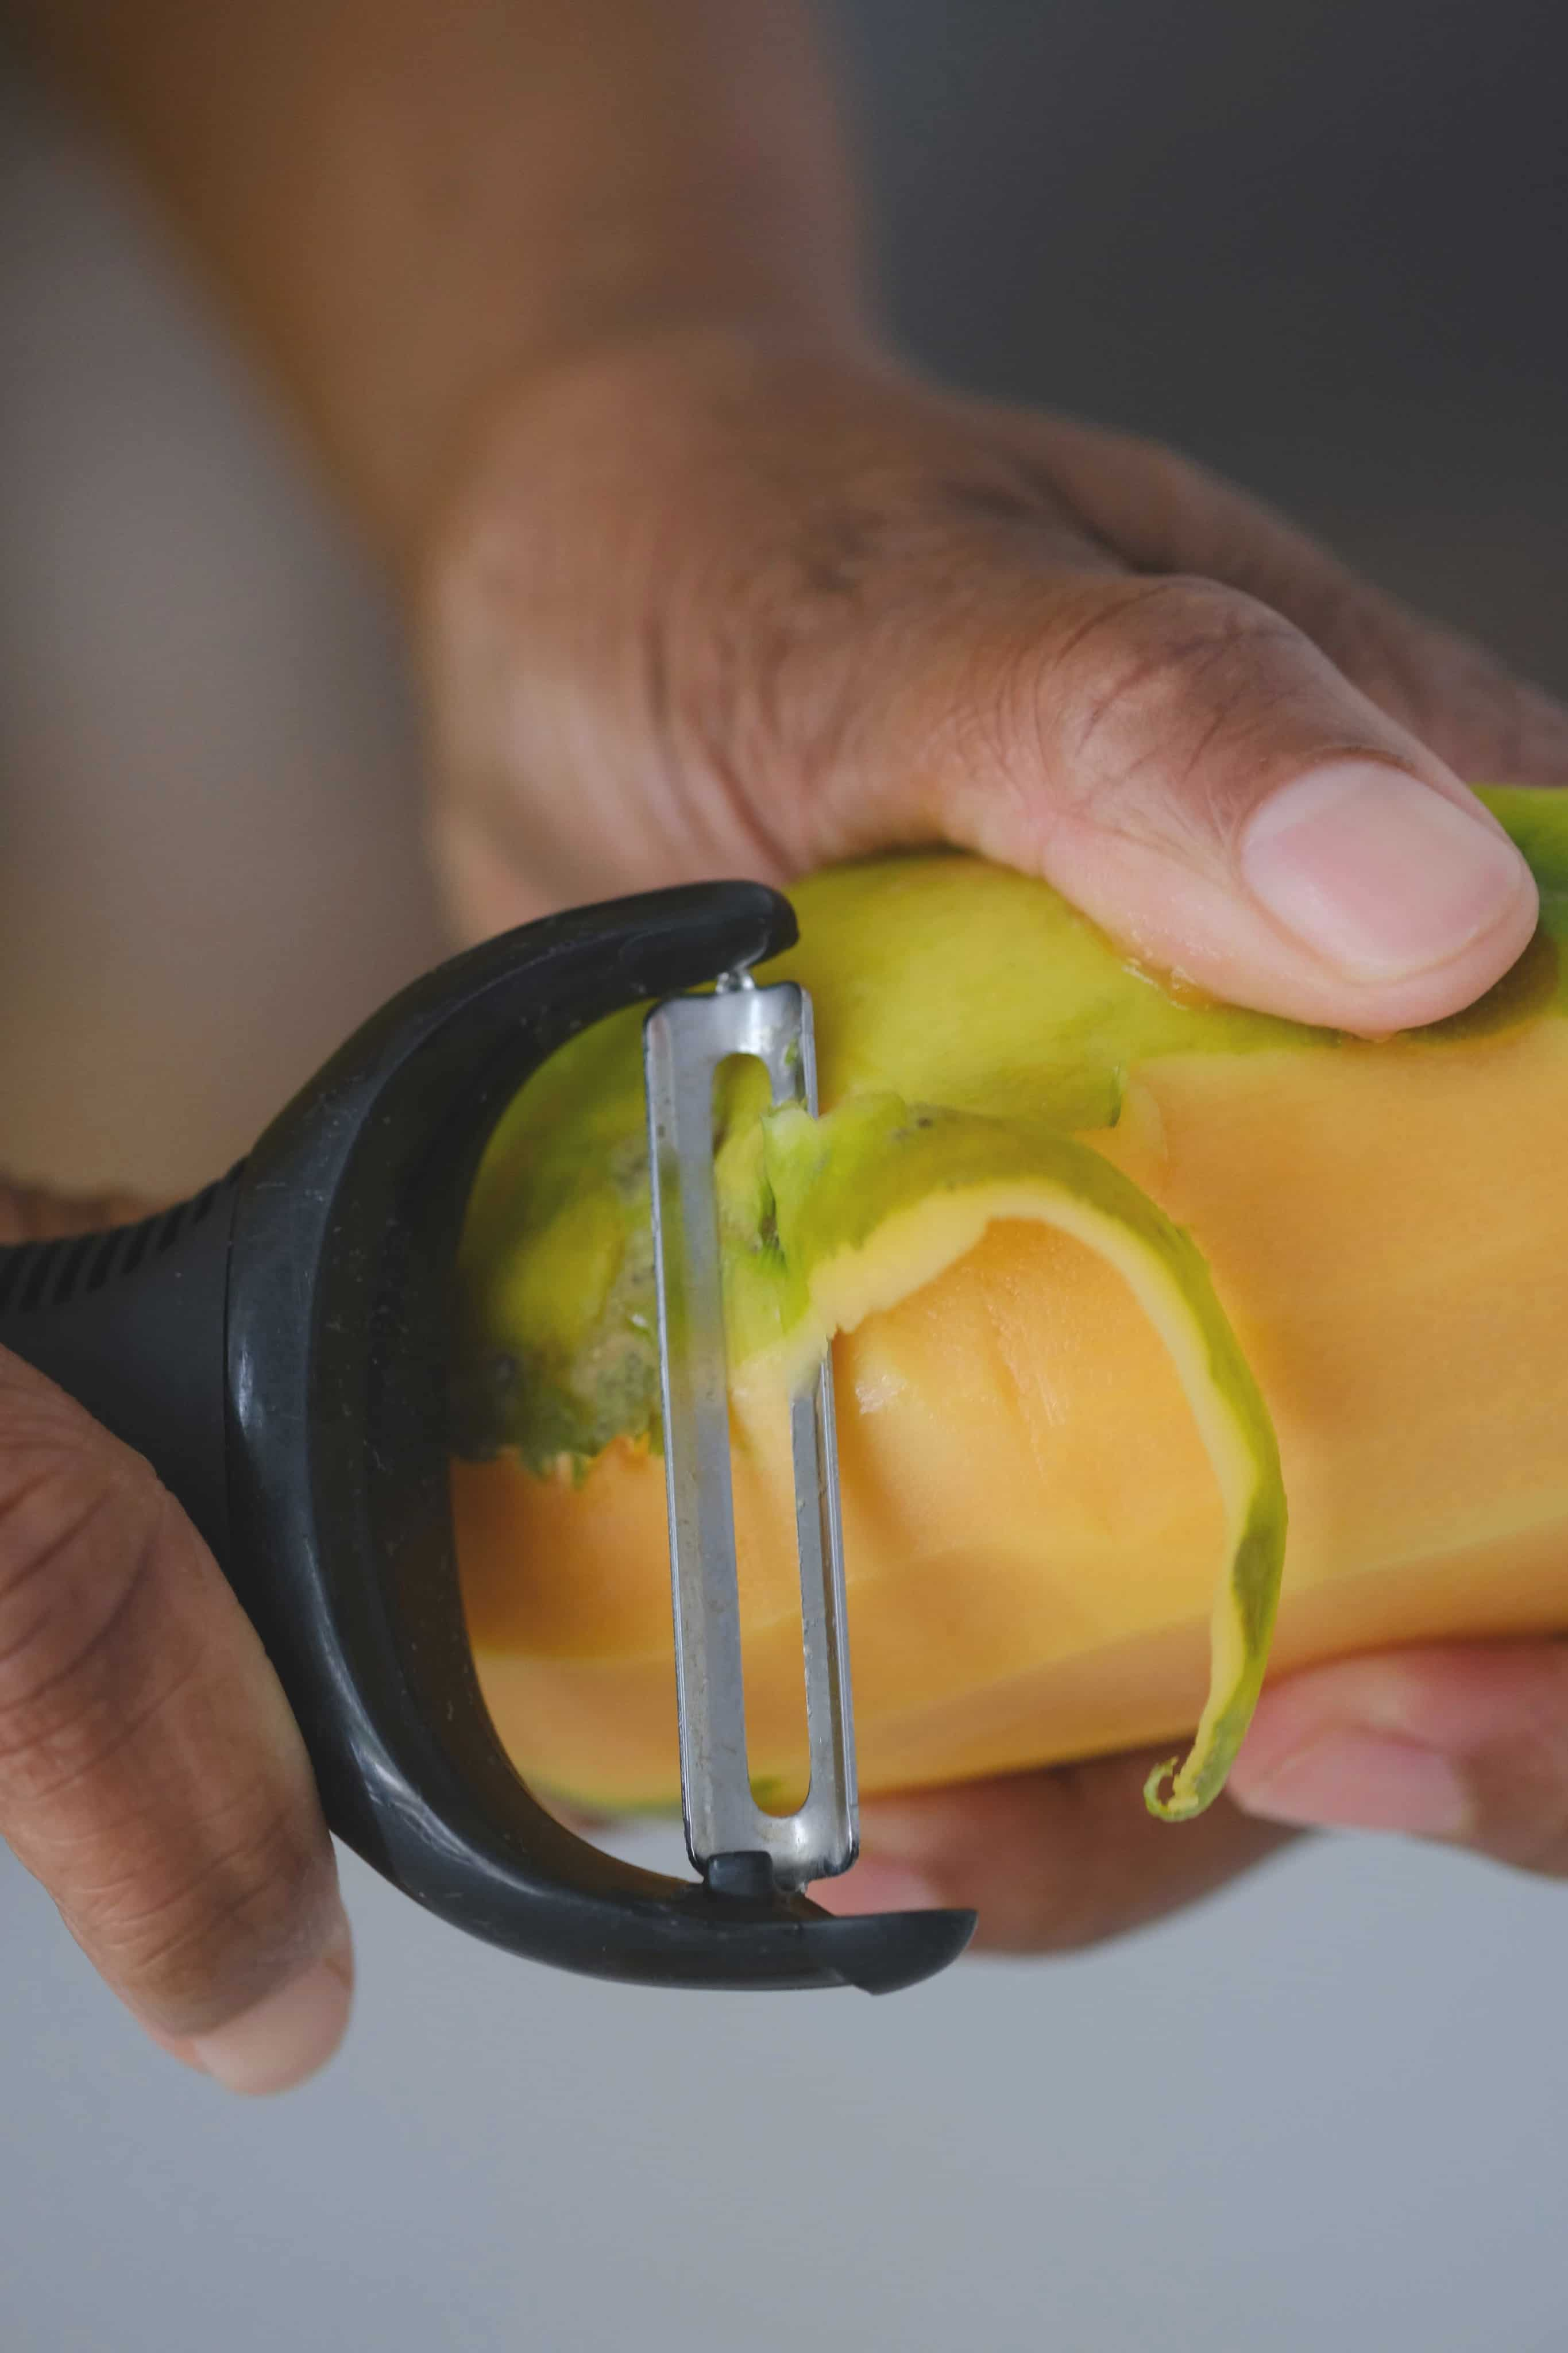 papaya being peeled with a peeler